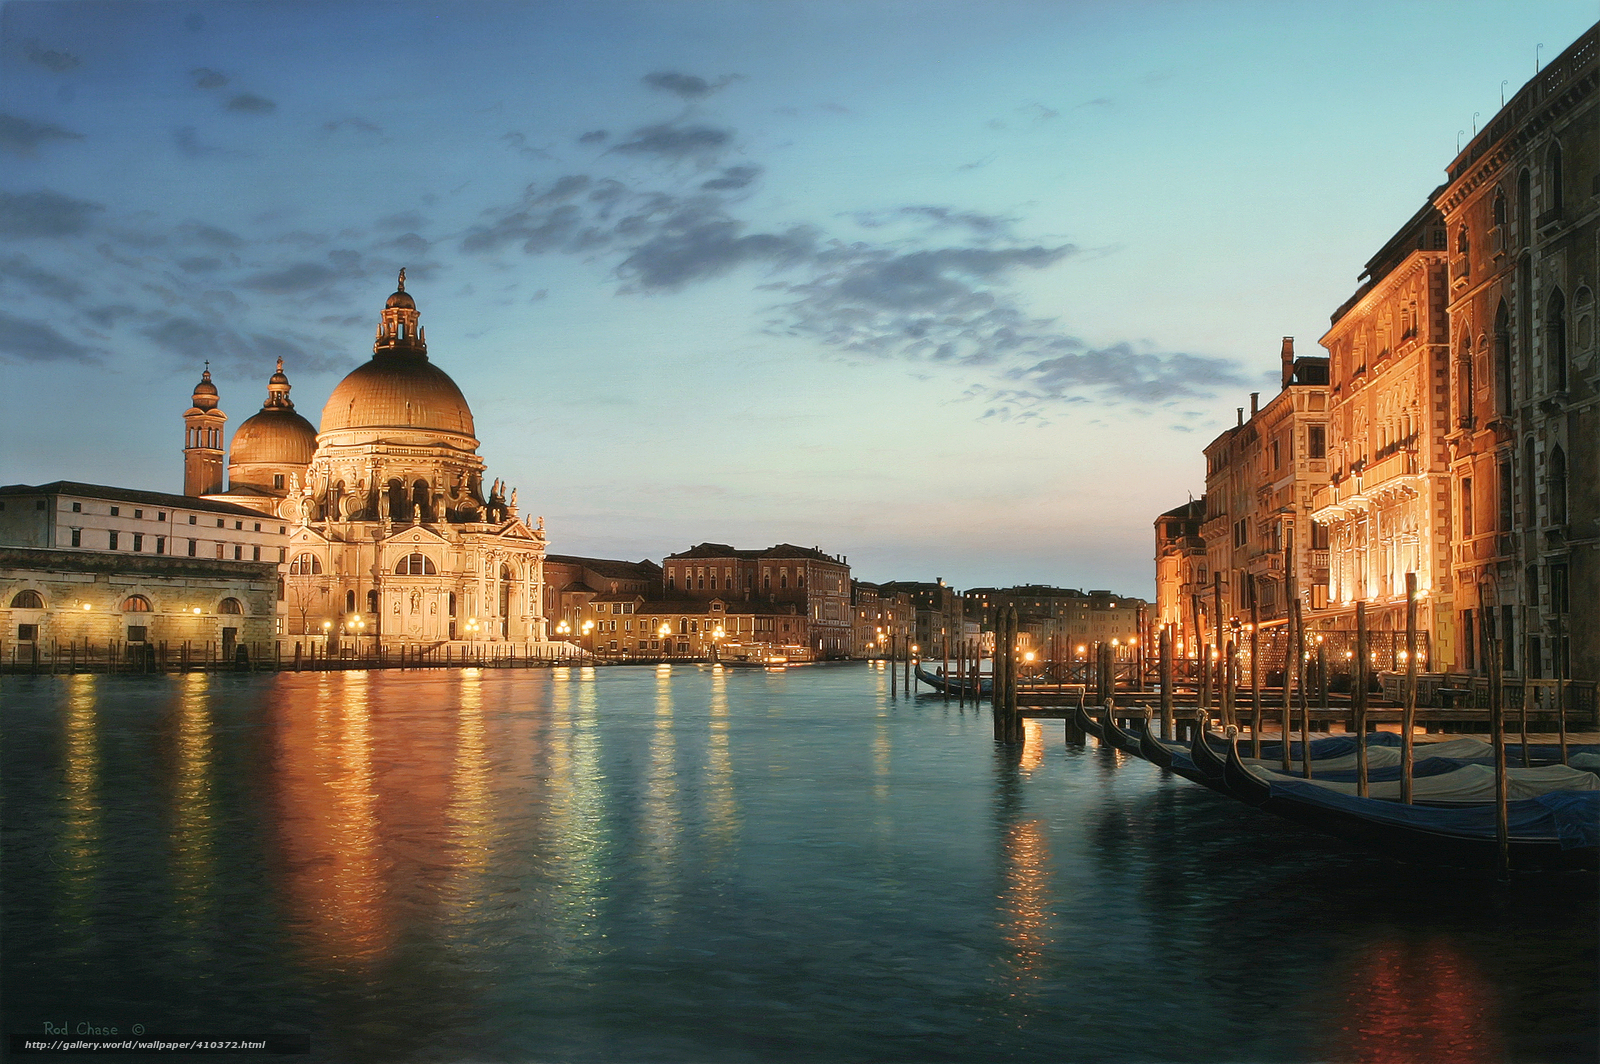 Grand canal wallpaper wallpaper wide hd for Italy wallpaper